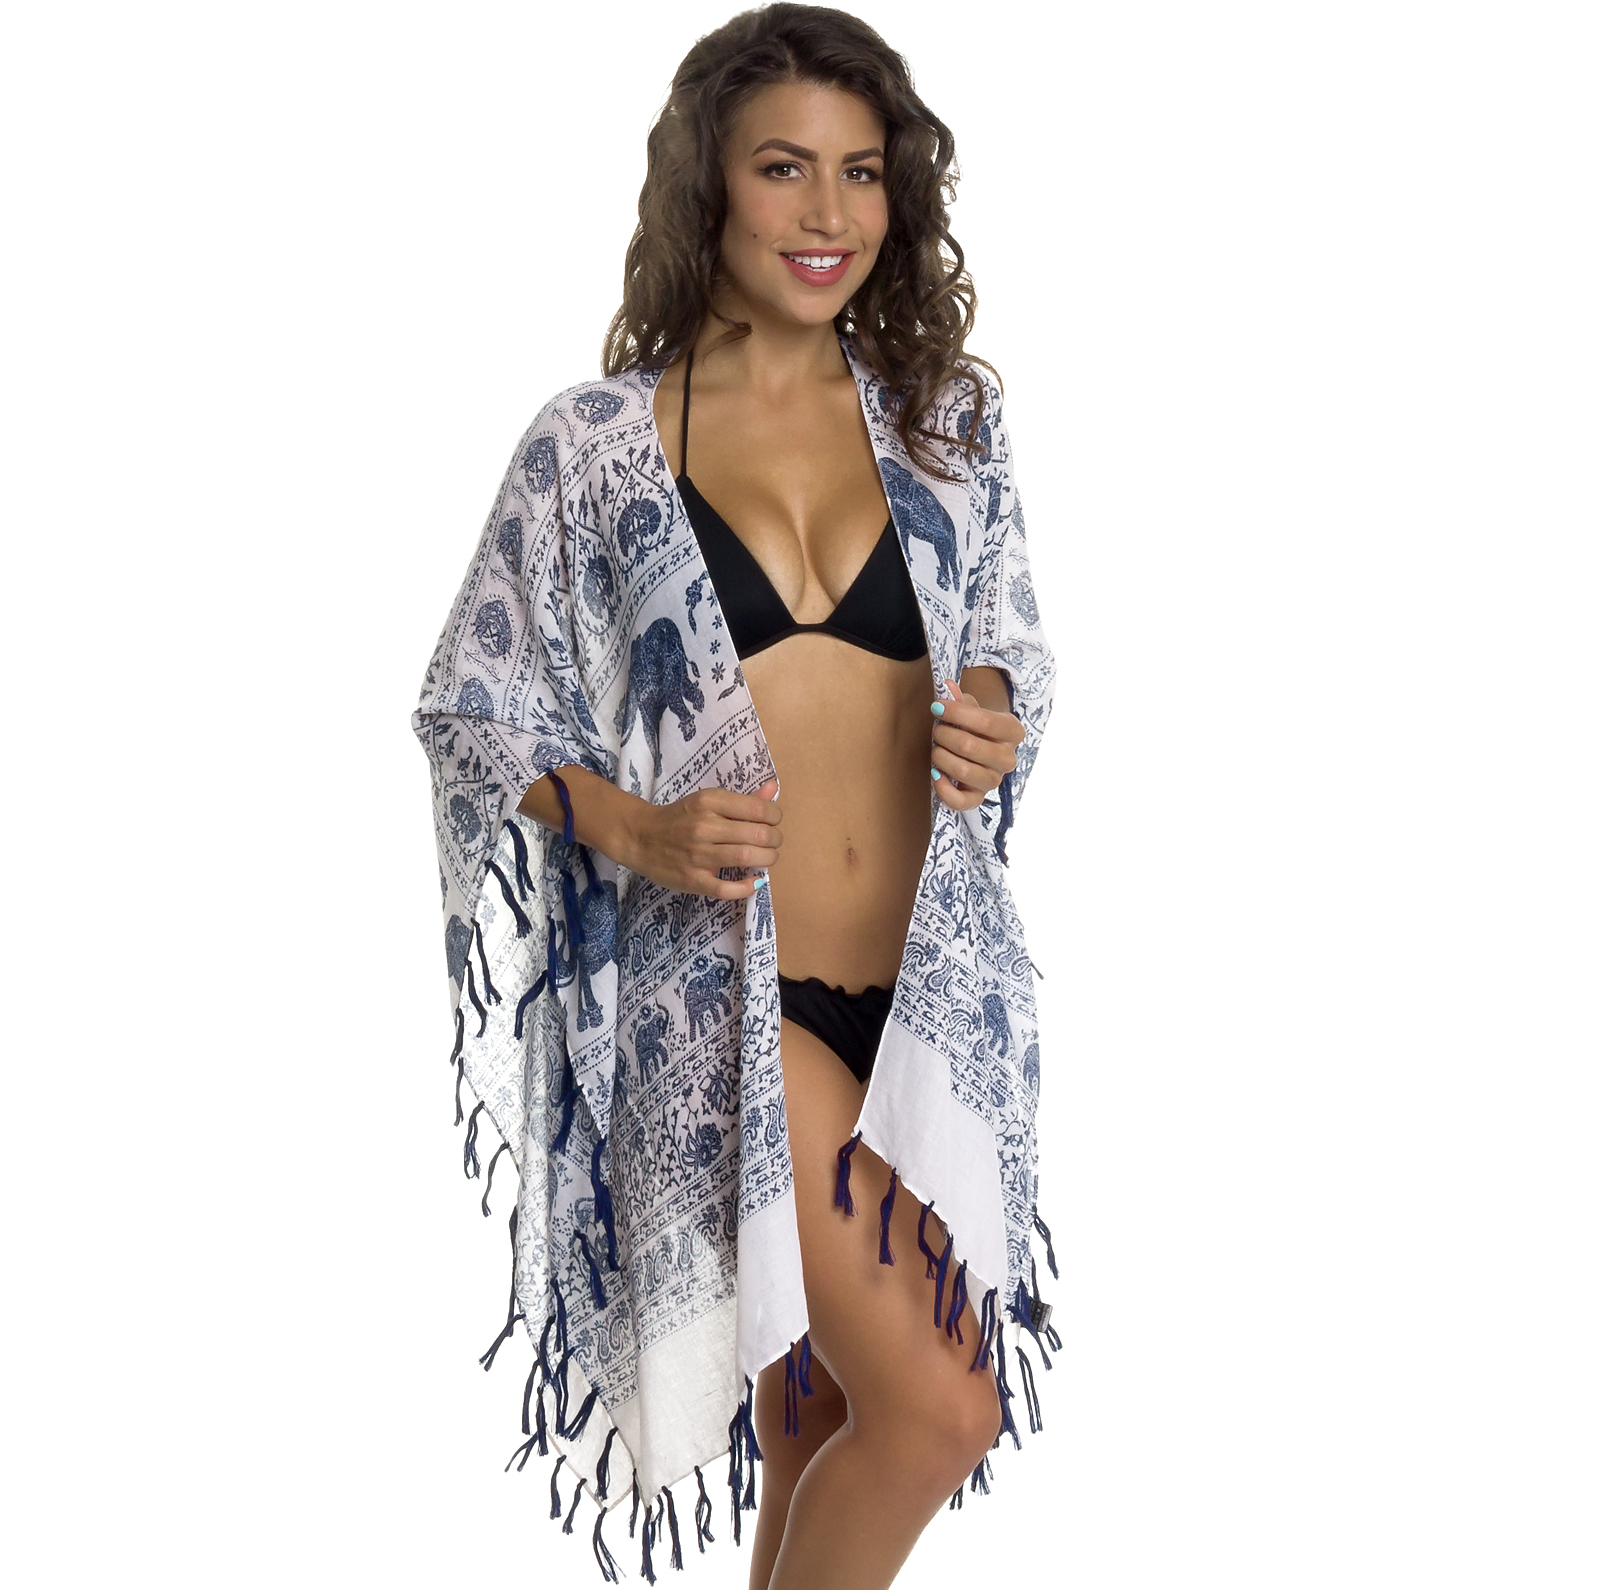 Women's Swimsuit Cover Up - Elephant Print Beachwear Oversized Kimono Tunic (Burgundy)